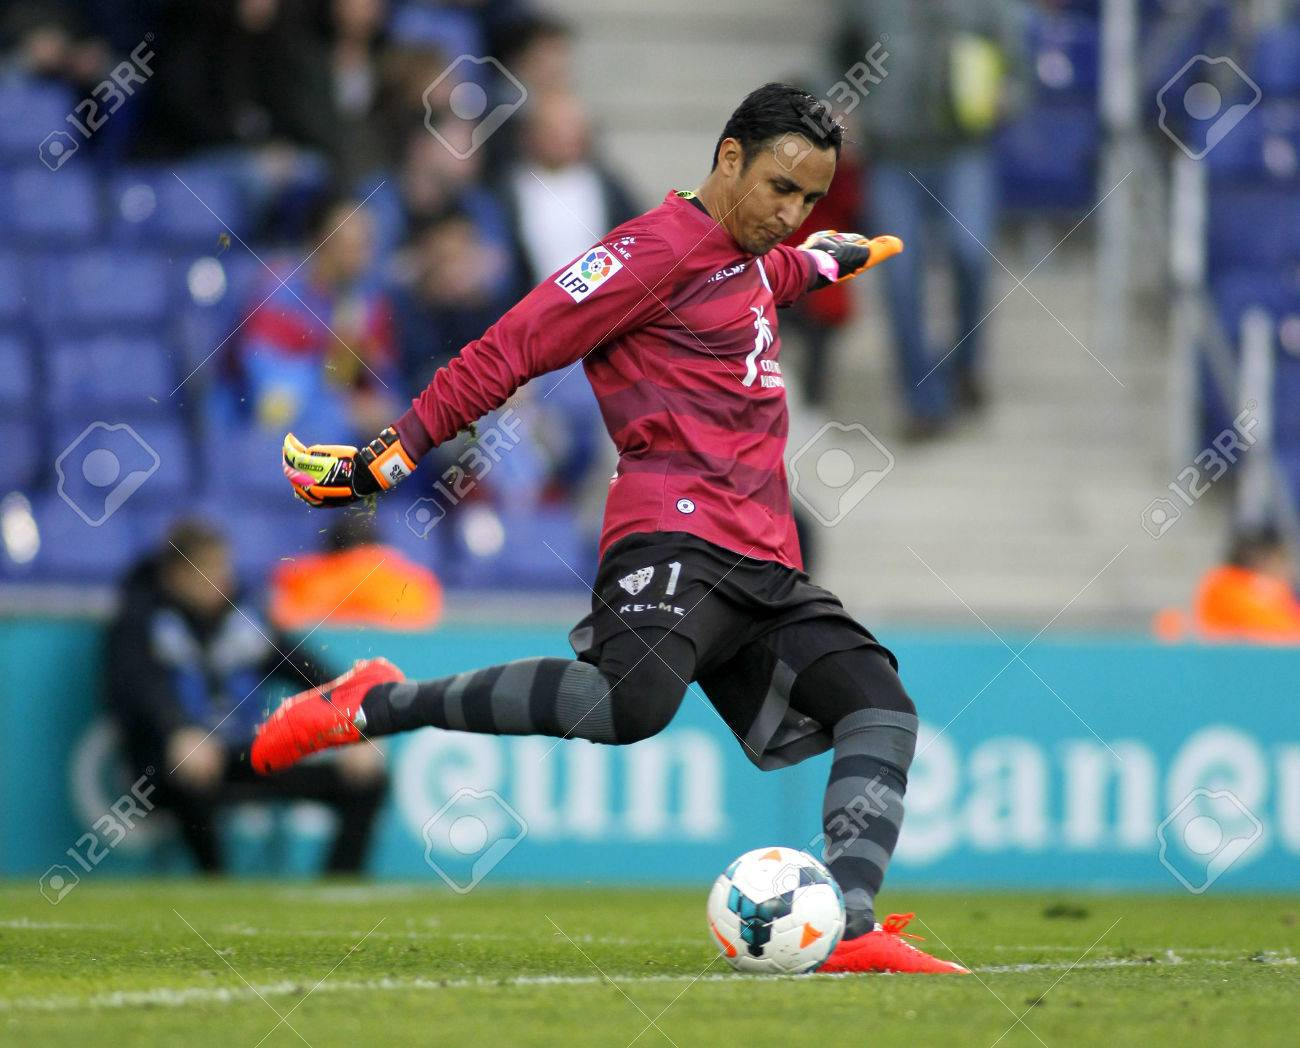 Keylor Navas UD Levante In Action During A Match Against RCD